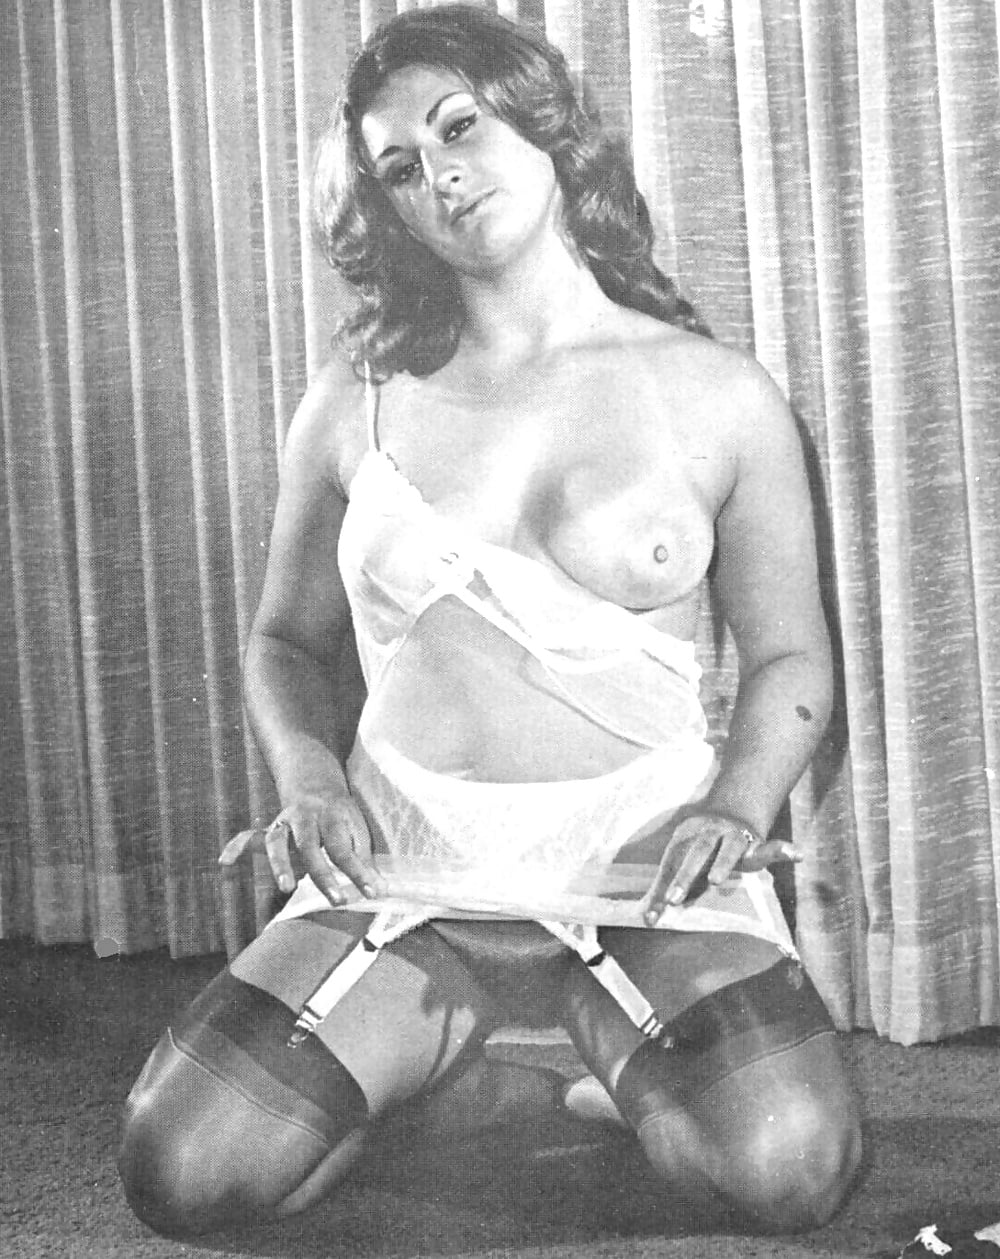 Retro lingerie fetish pics